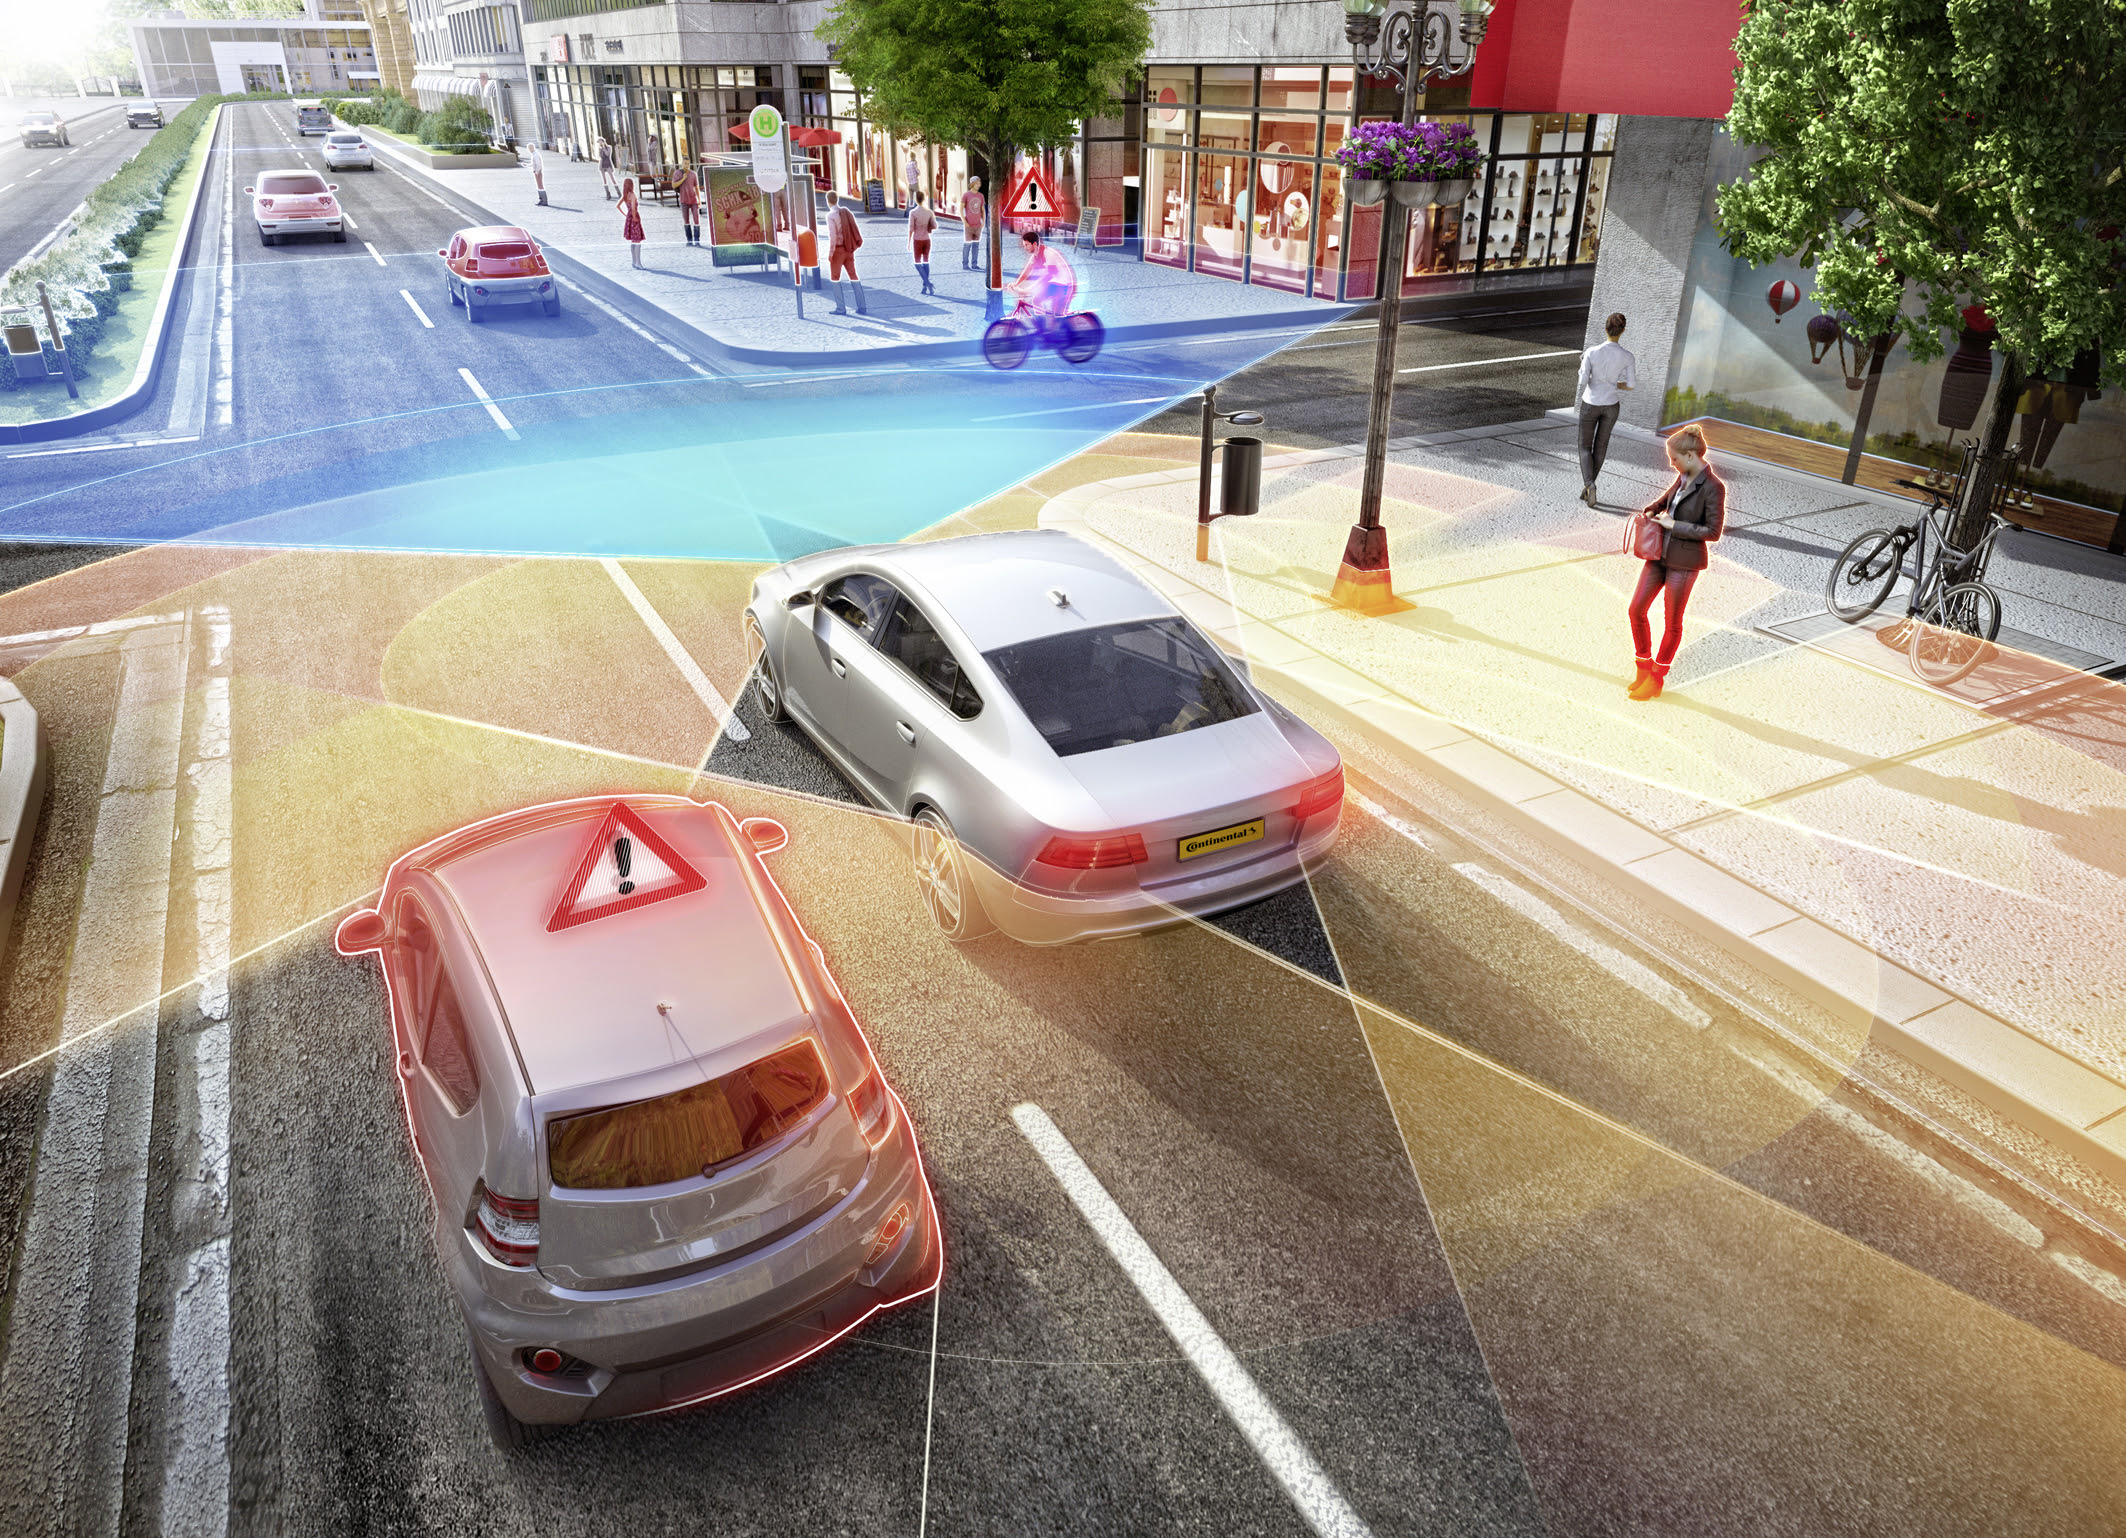 Continental India collaborates with Universities for Research on Automated Driving Technologies